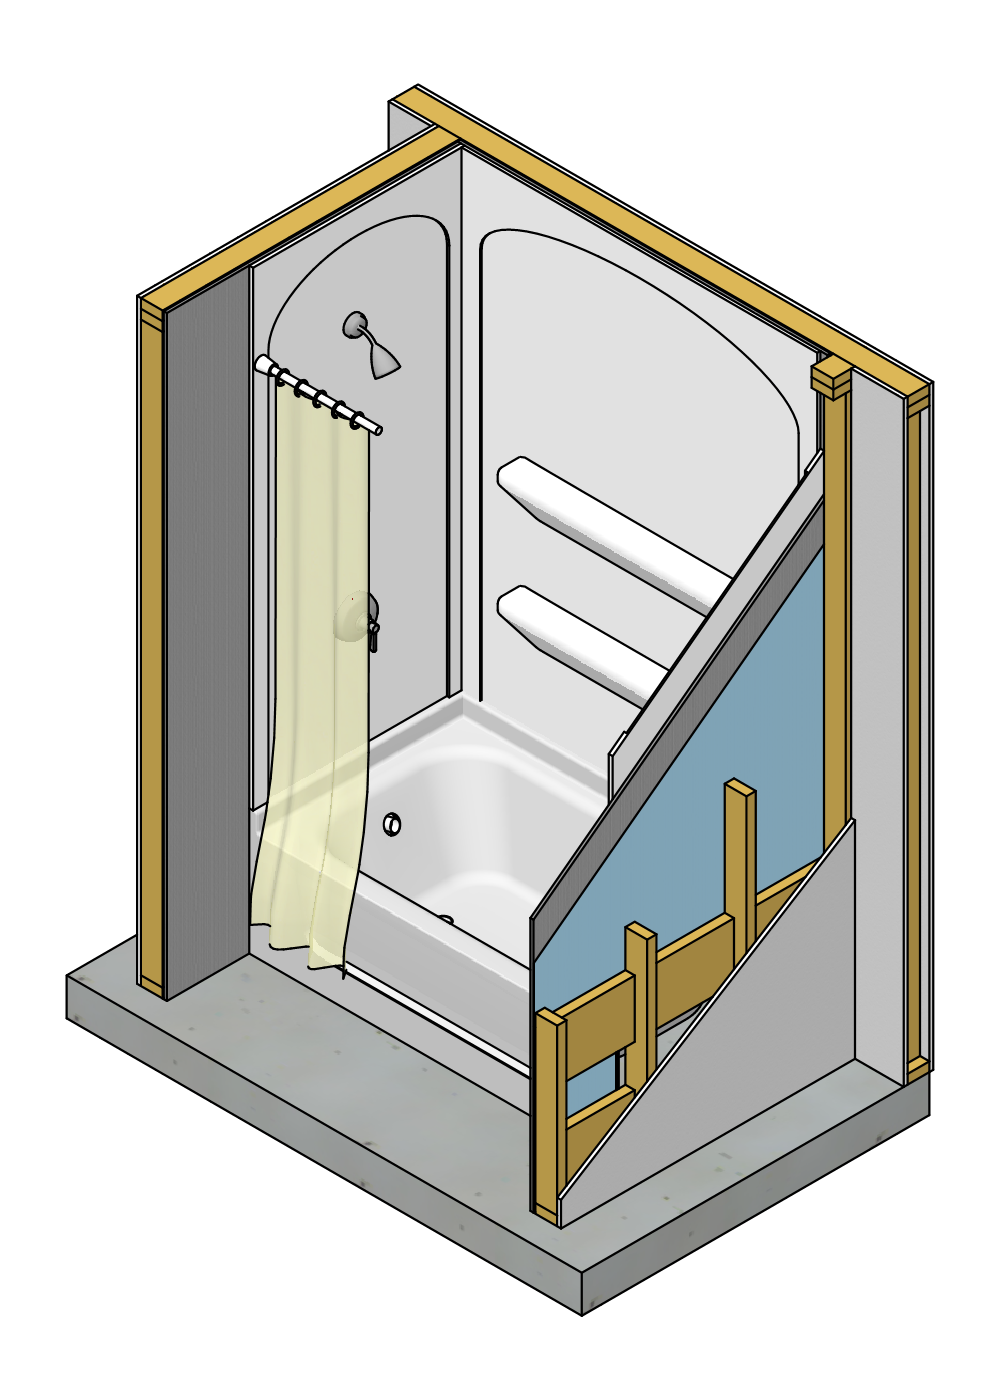 Image Result For How To Build Frame For A One Piece Shower Stall